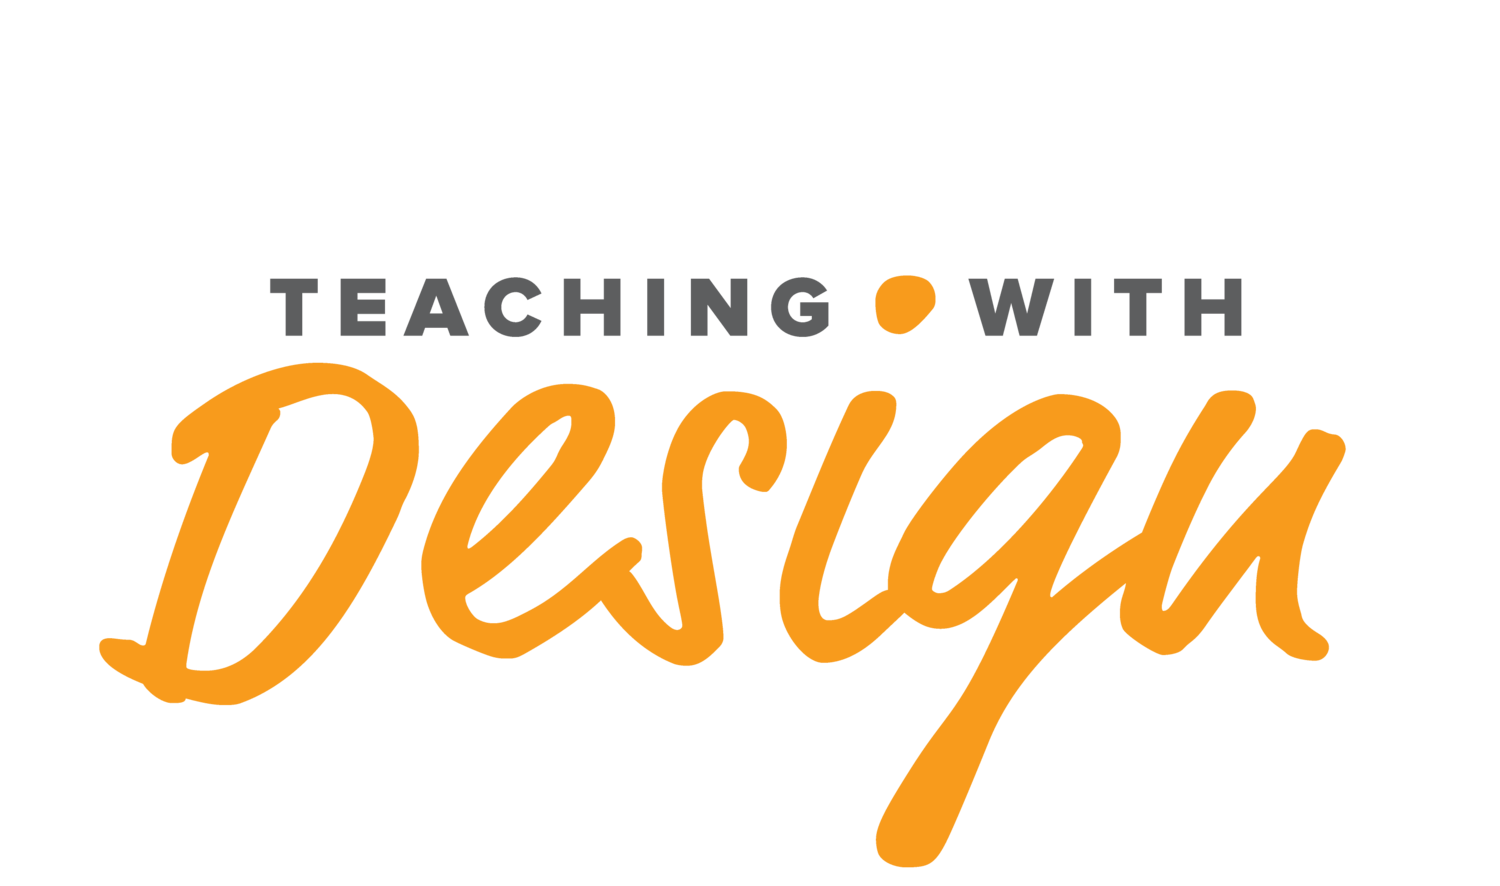 Teaching With Design